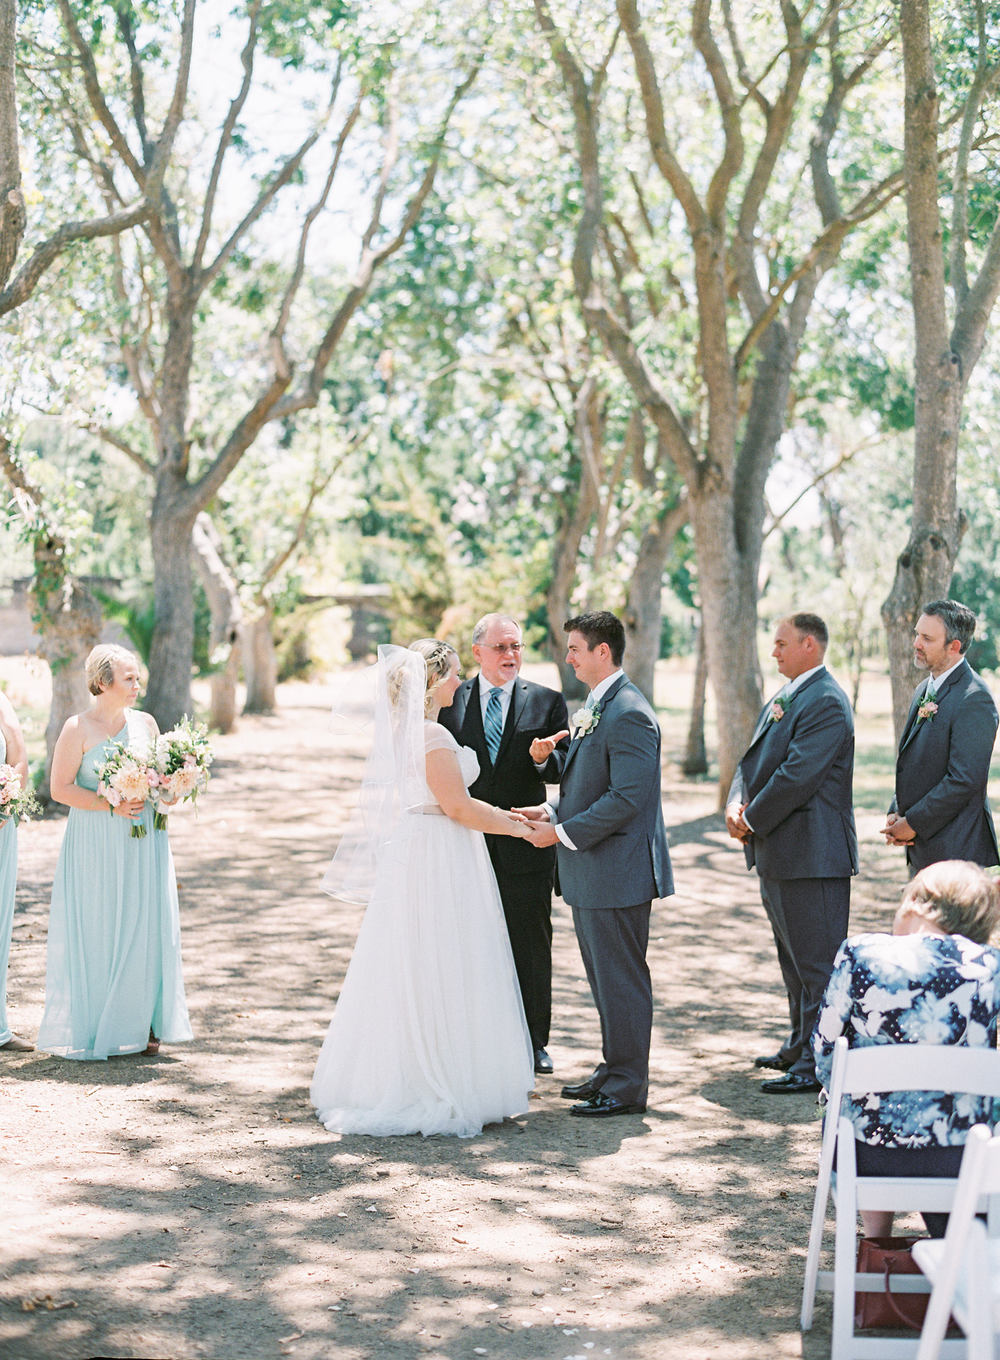 southern-inspired-wedding-at-ravenswood-historic-site-011-6.jpg